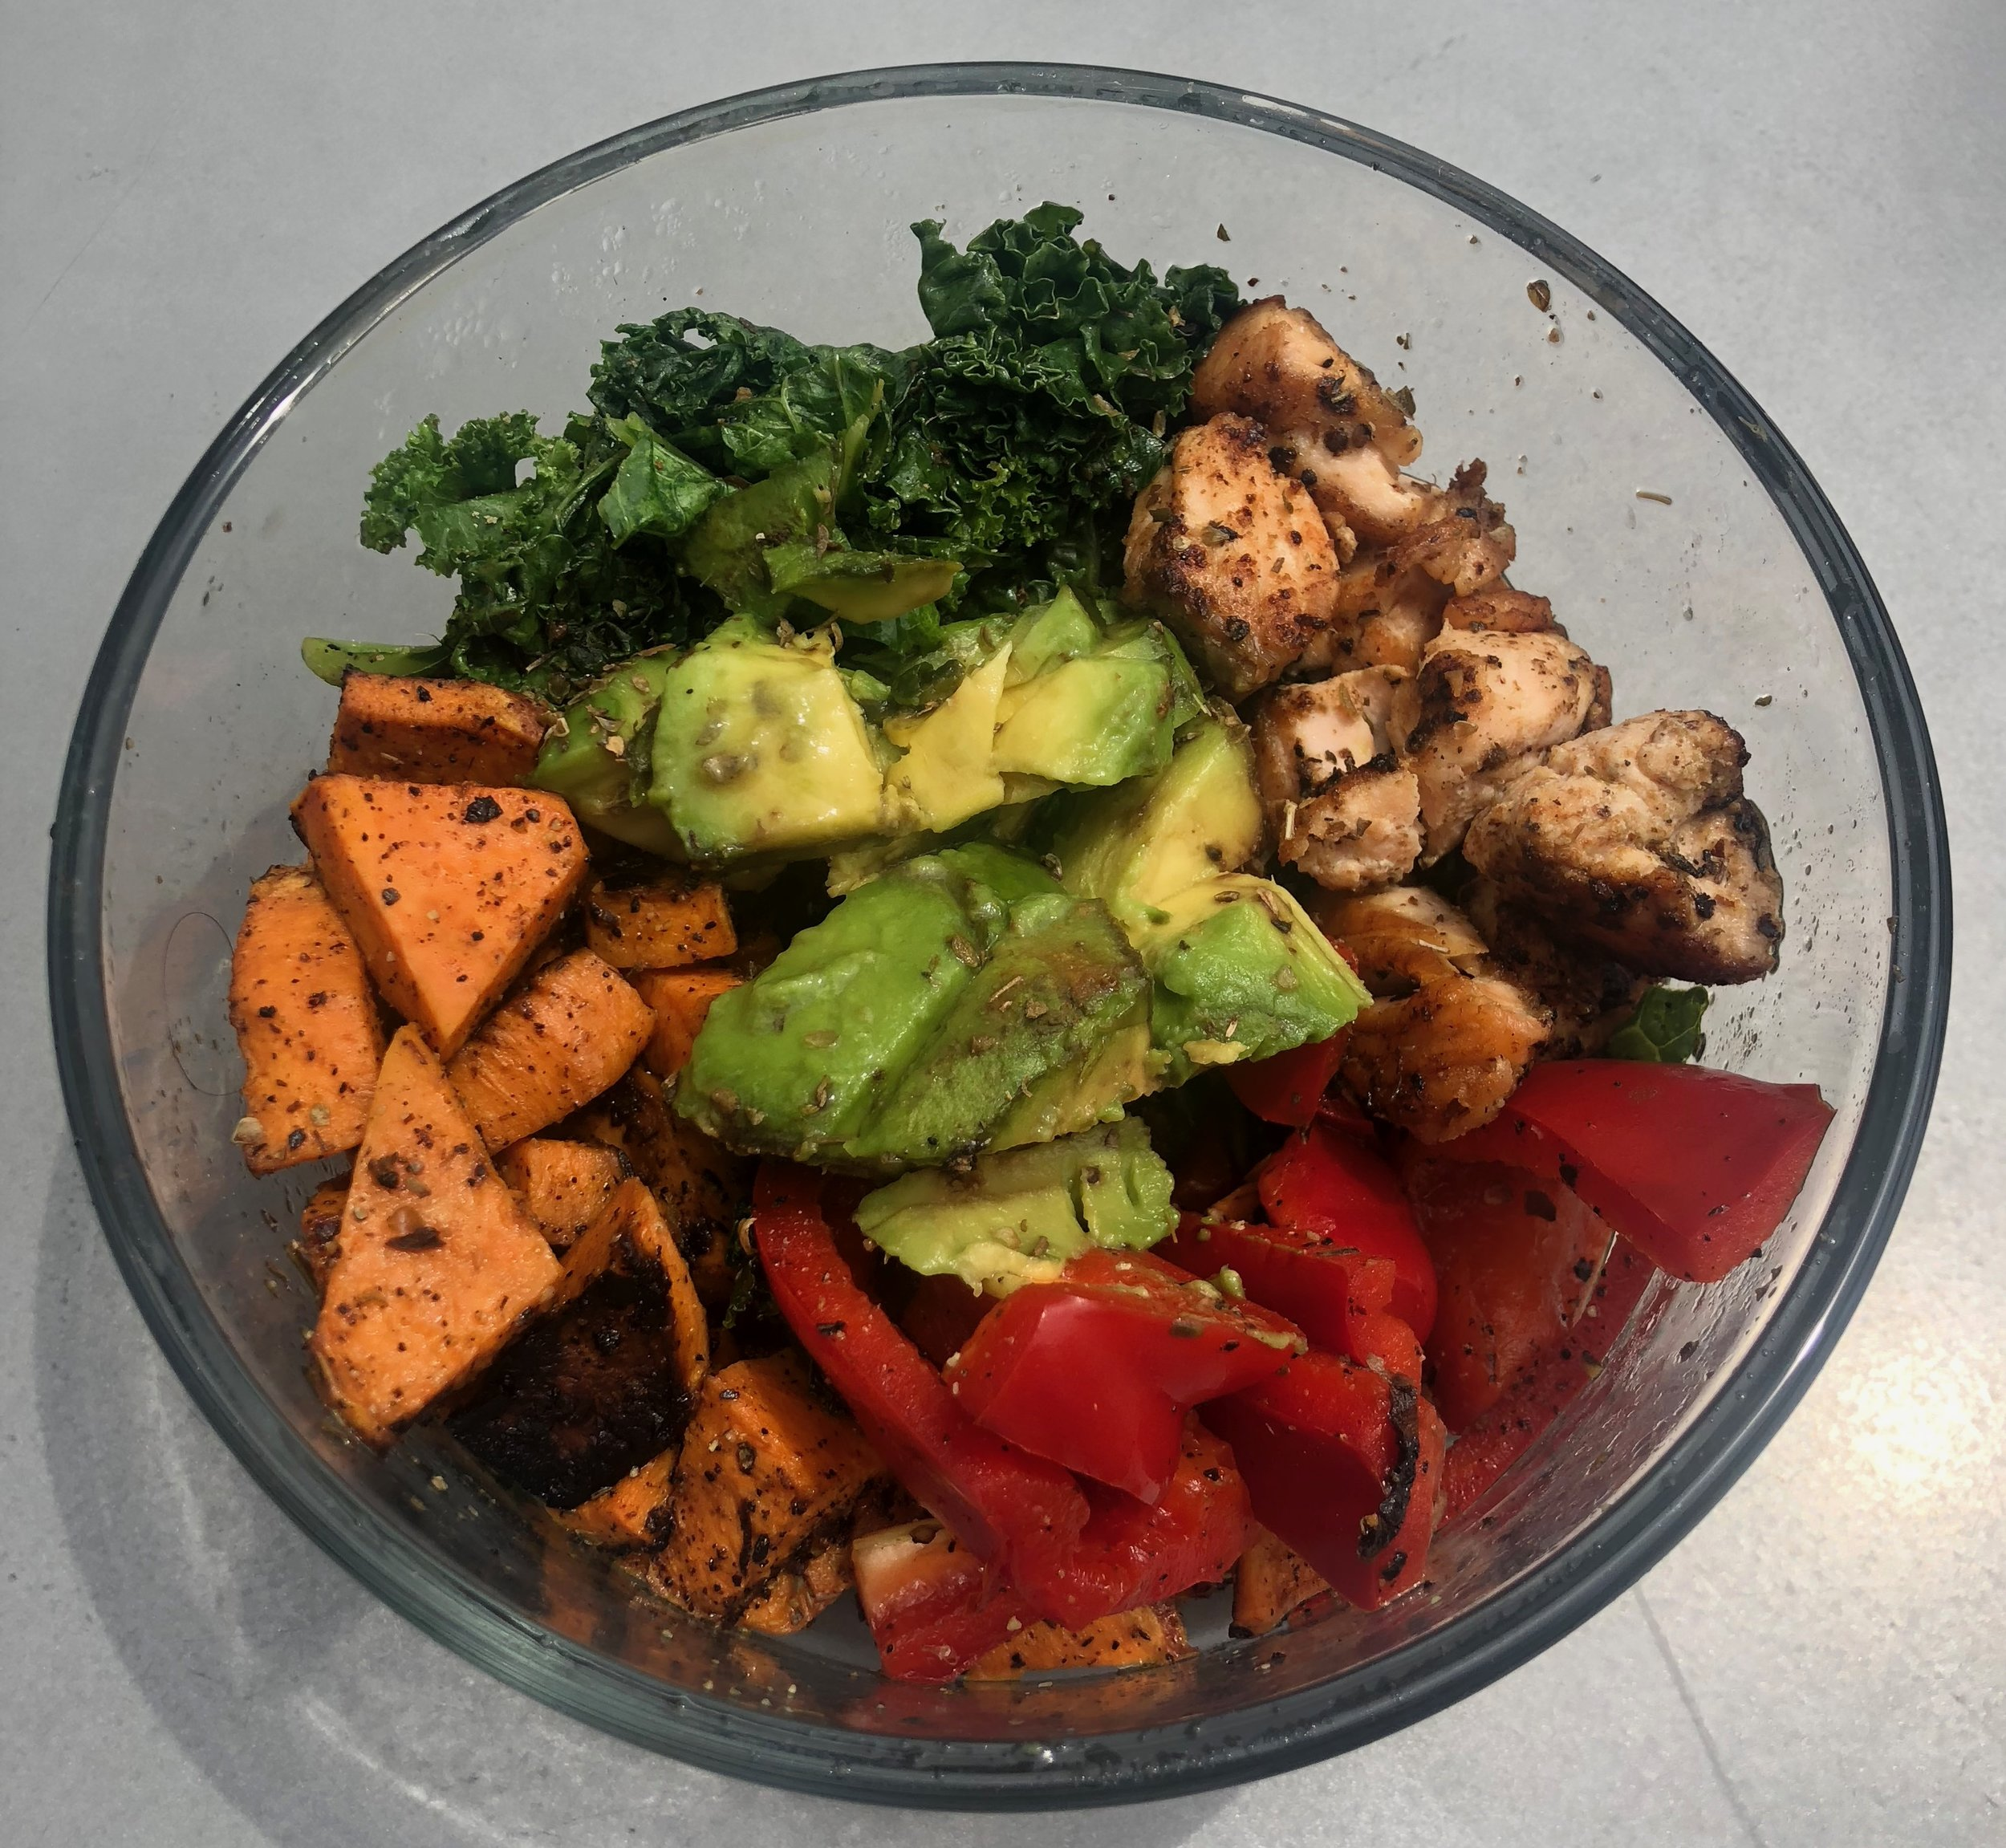 Dinner: Salmon, sautéed kale, sweet potato, avocado, roasted red peppers.